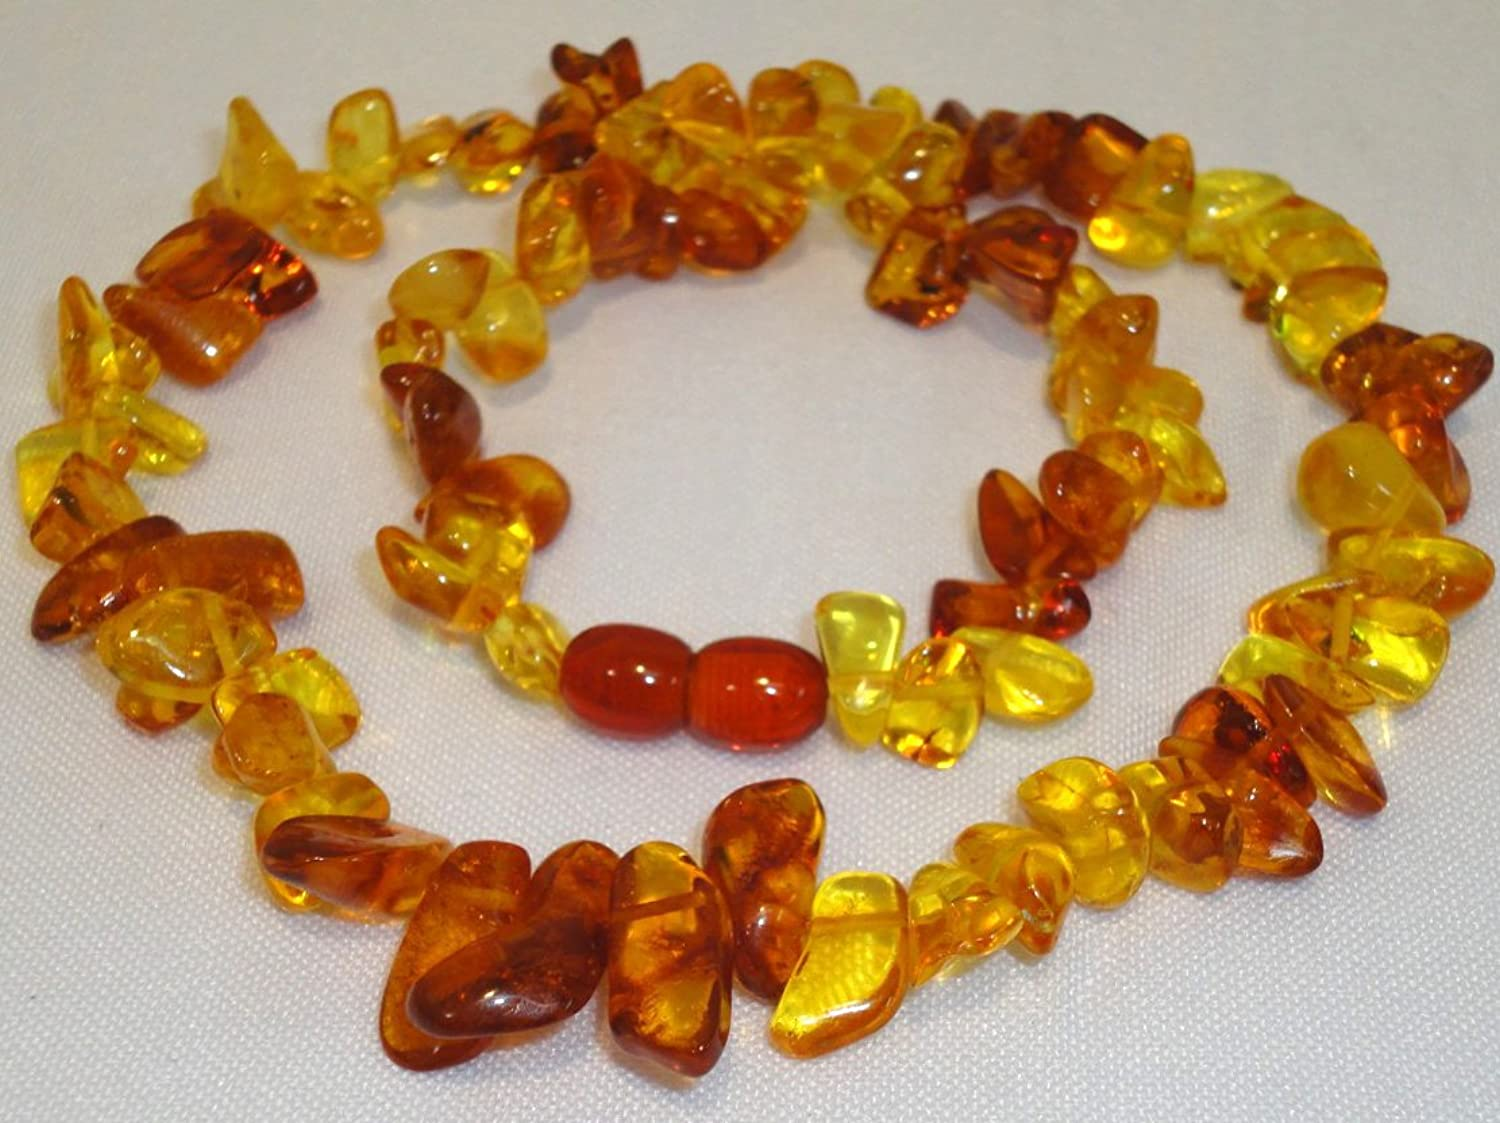 Beautiful Natural Polished Old 100% Baltic Amber Necklace 17gr  Genuine (49)